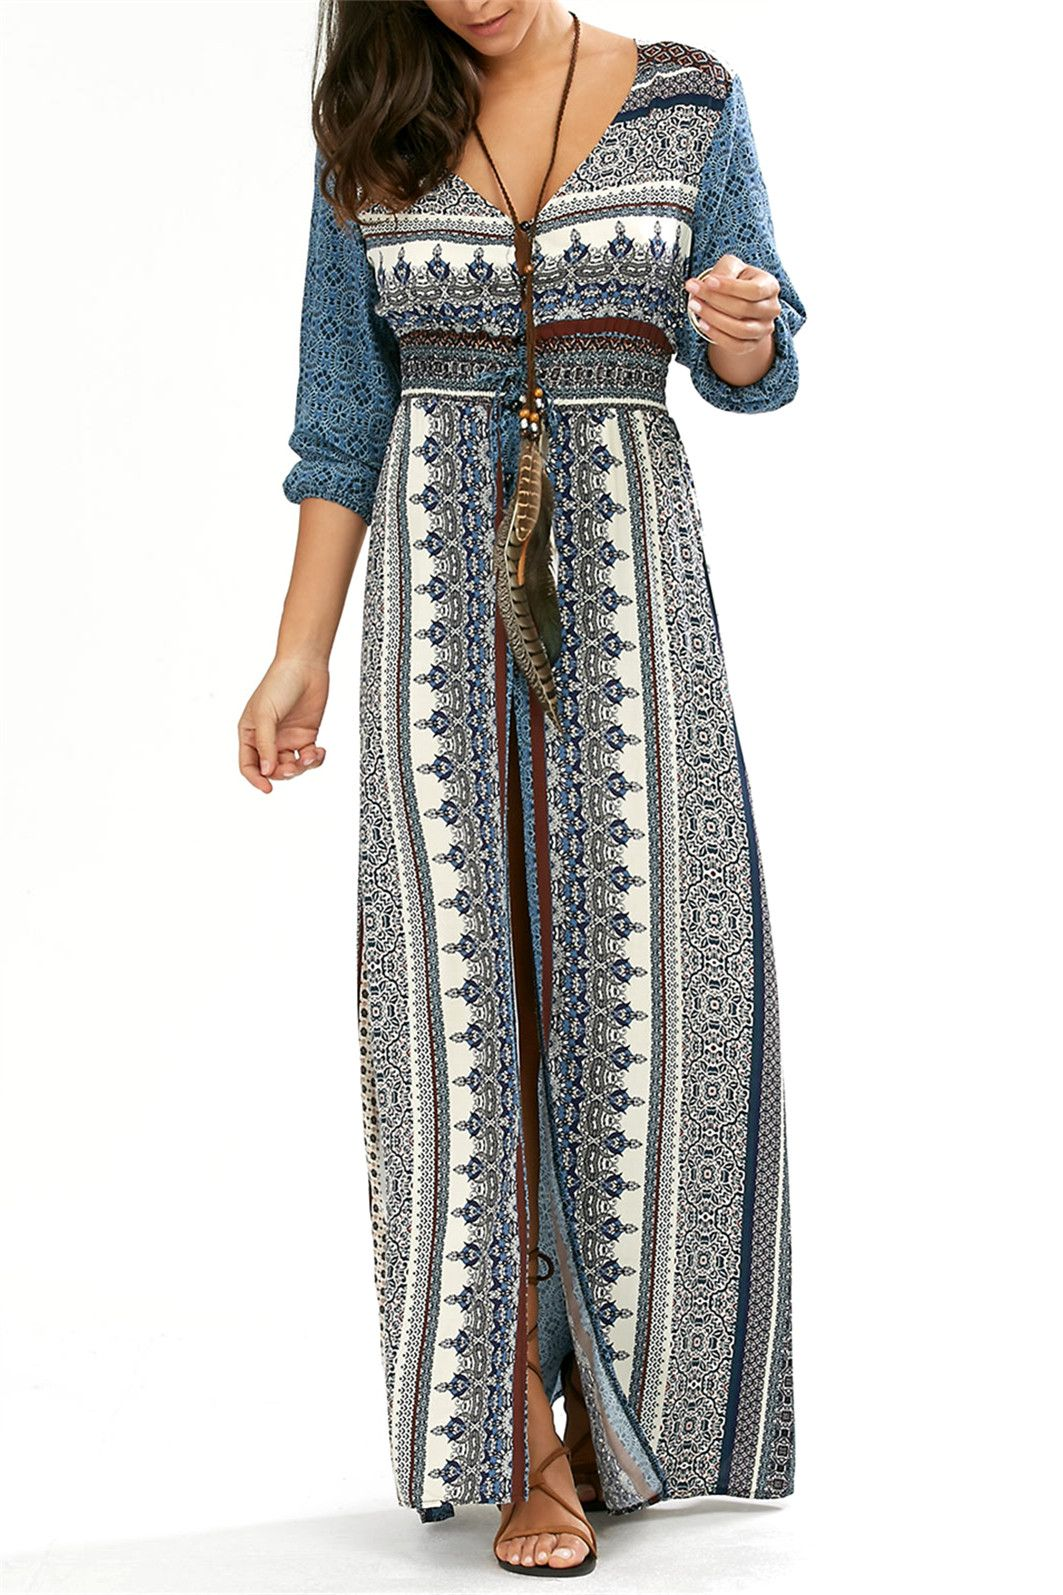 98d5efca3ce ... Lace And Long Sleeve Boho Style Dresses Cheap Online Sale.  18.89  Empire Waist Button Down Bohemian Maxi Dress - Blue https   tmblr.